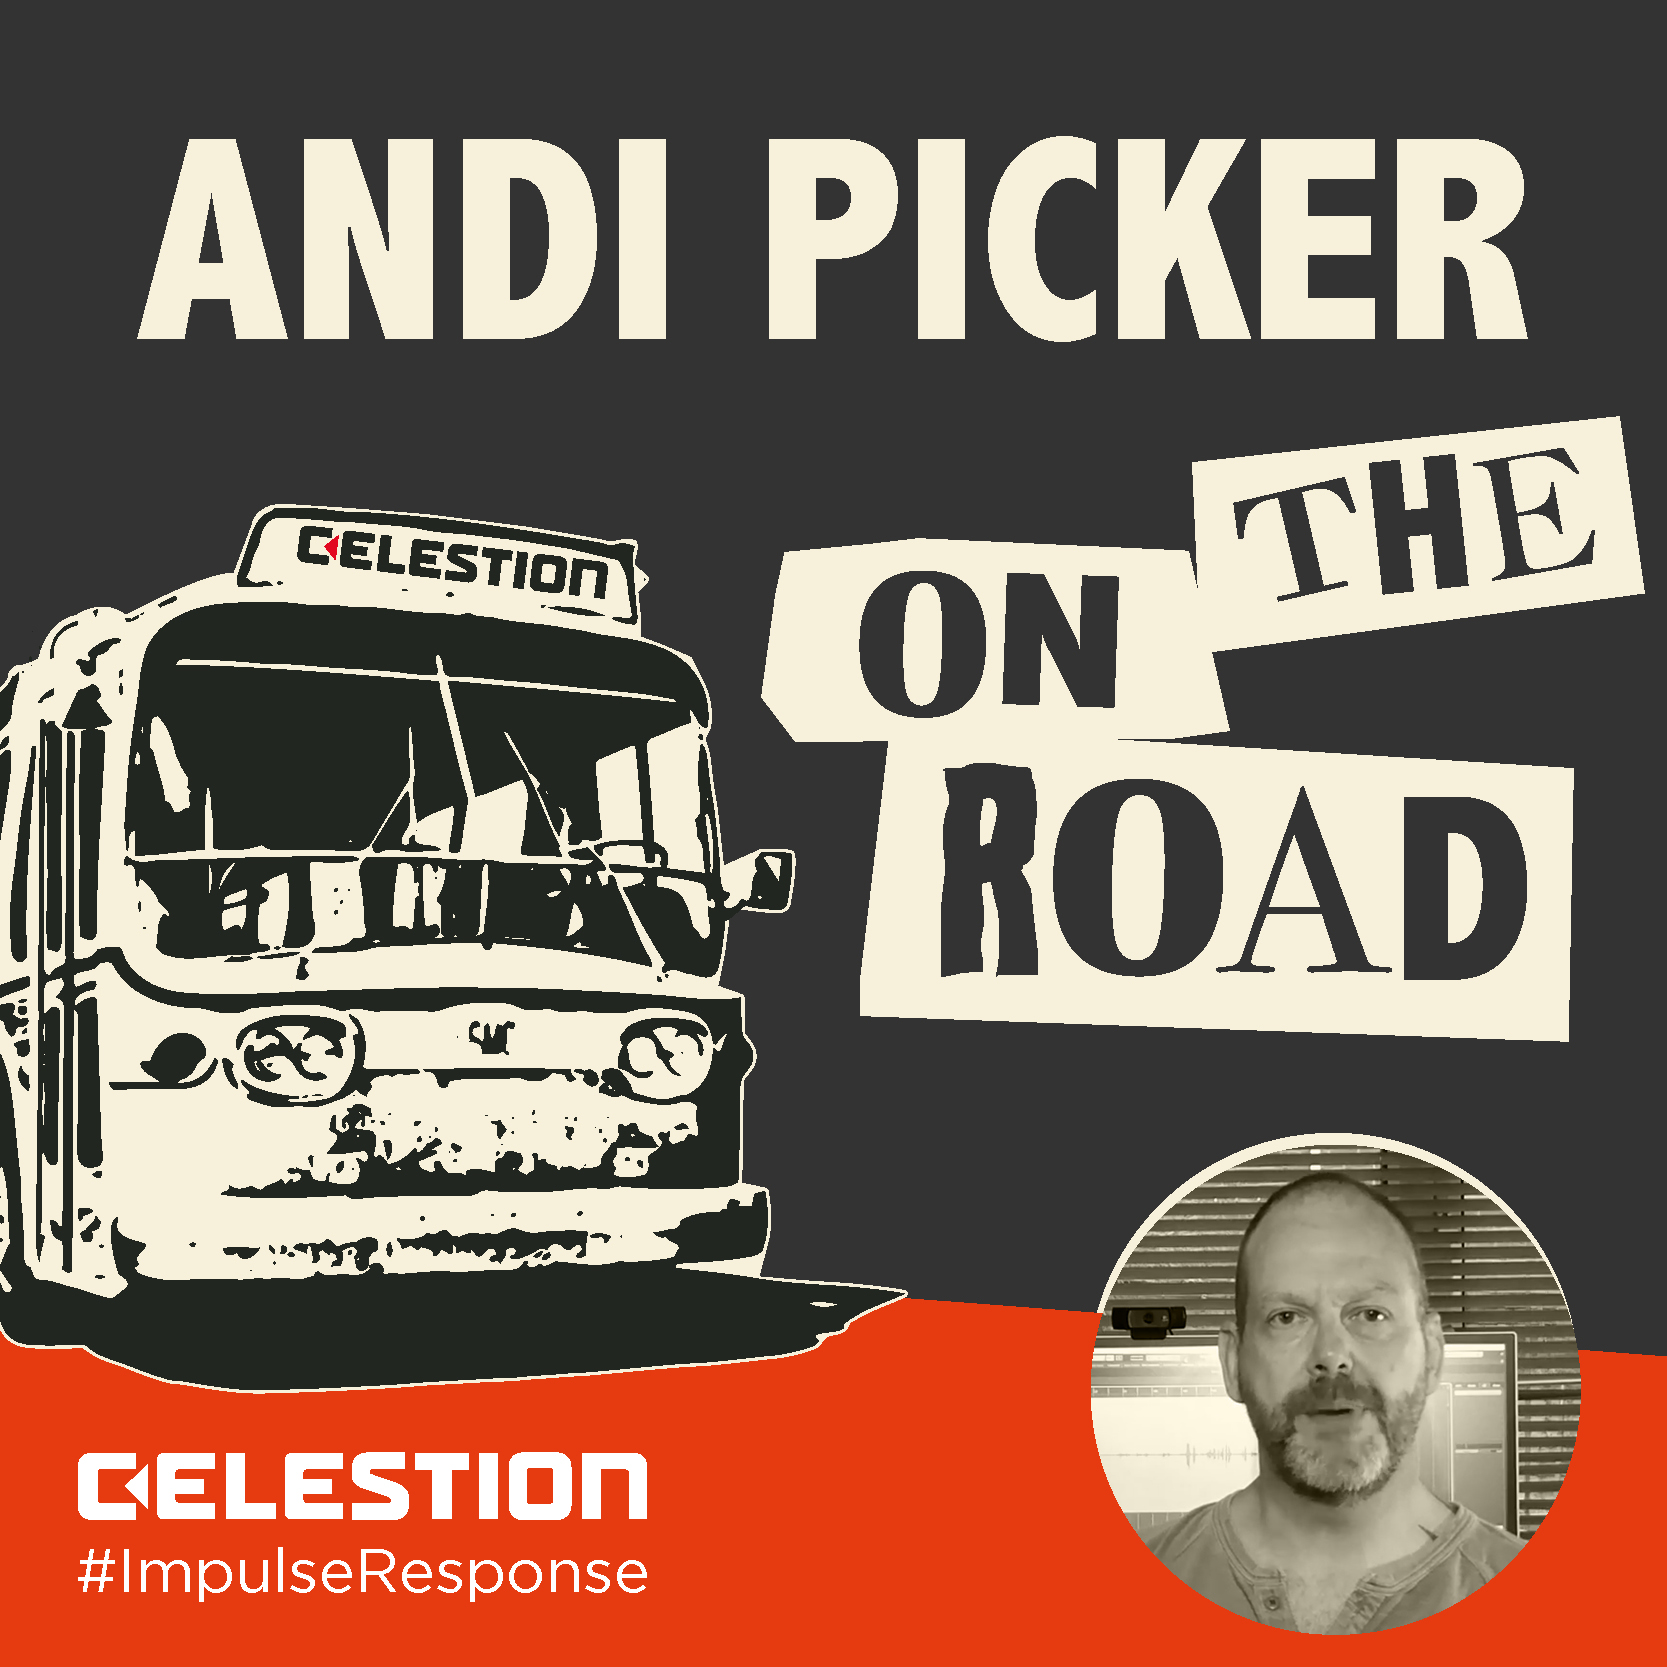 Guest Blog: On the Road with Andi Picker